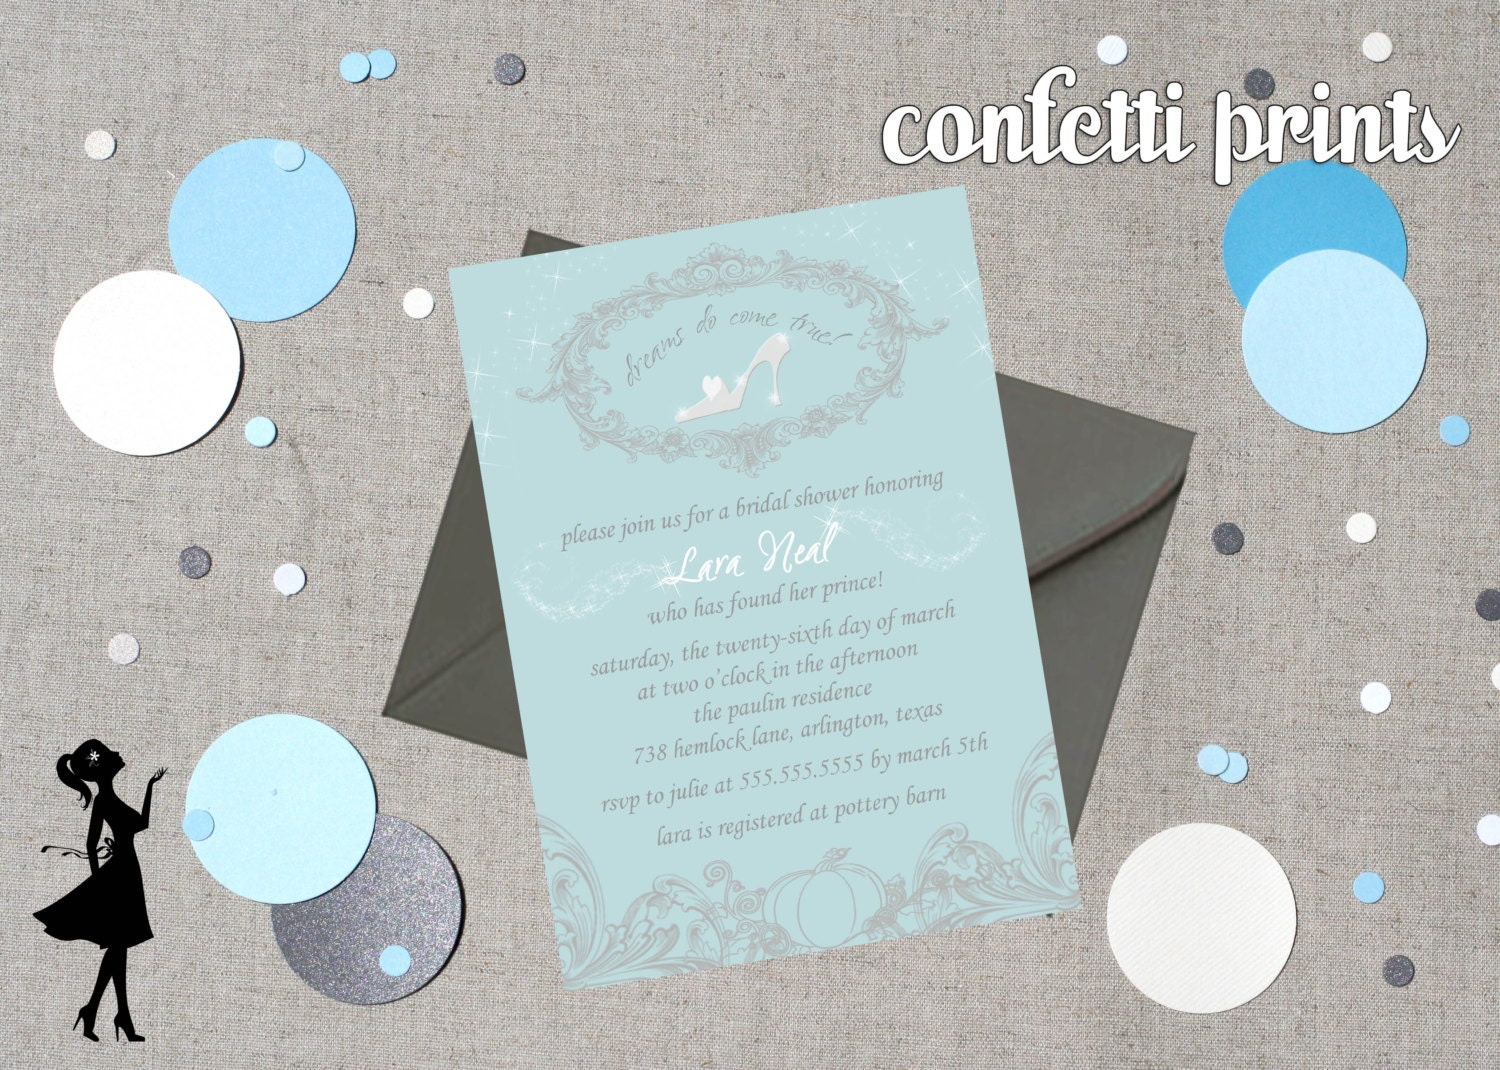 Disney Themed Wedding Invitations for best invitations example